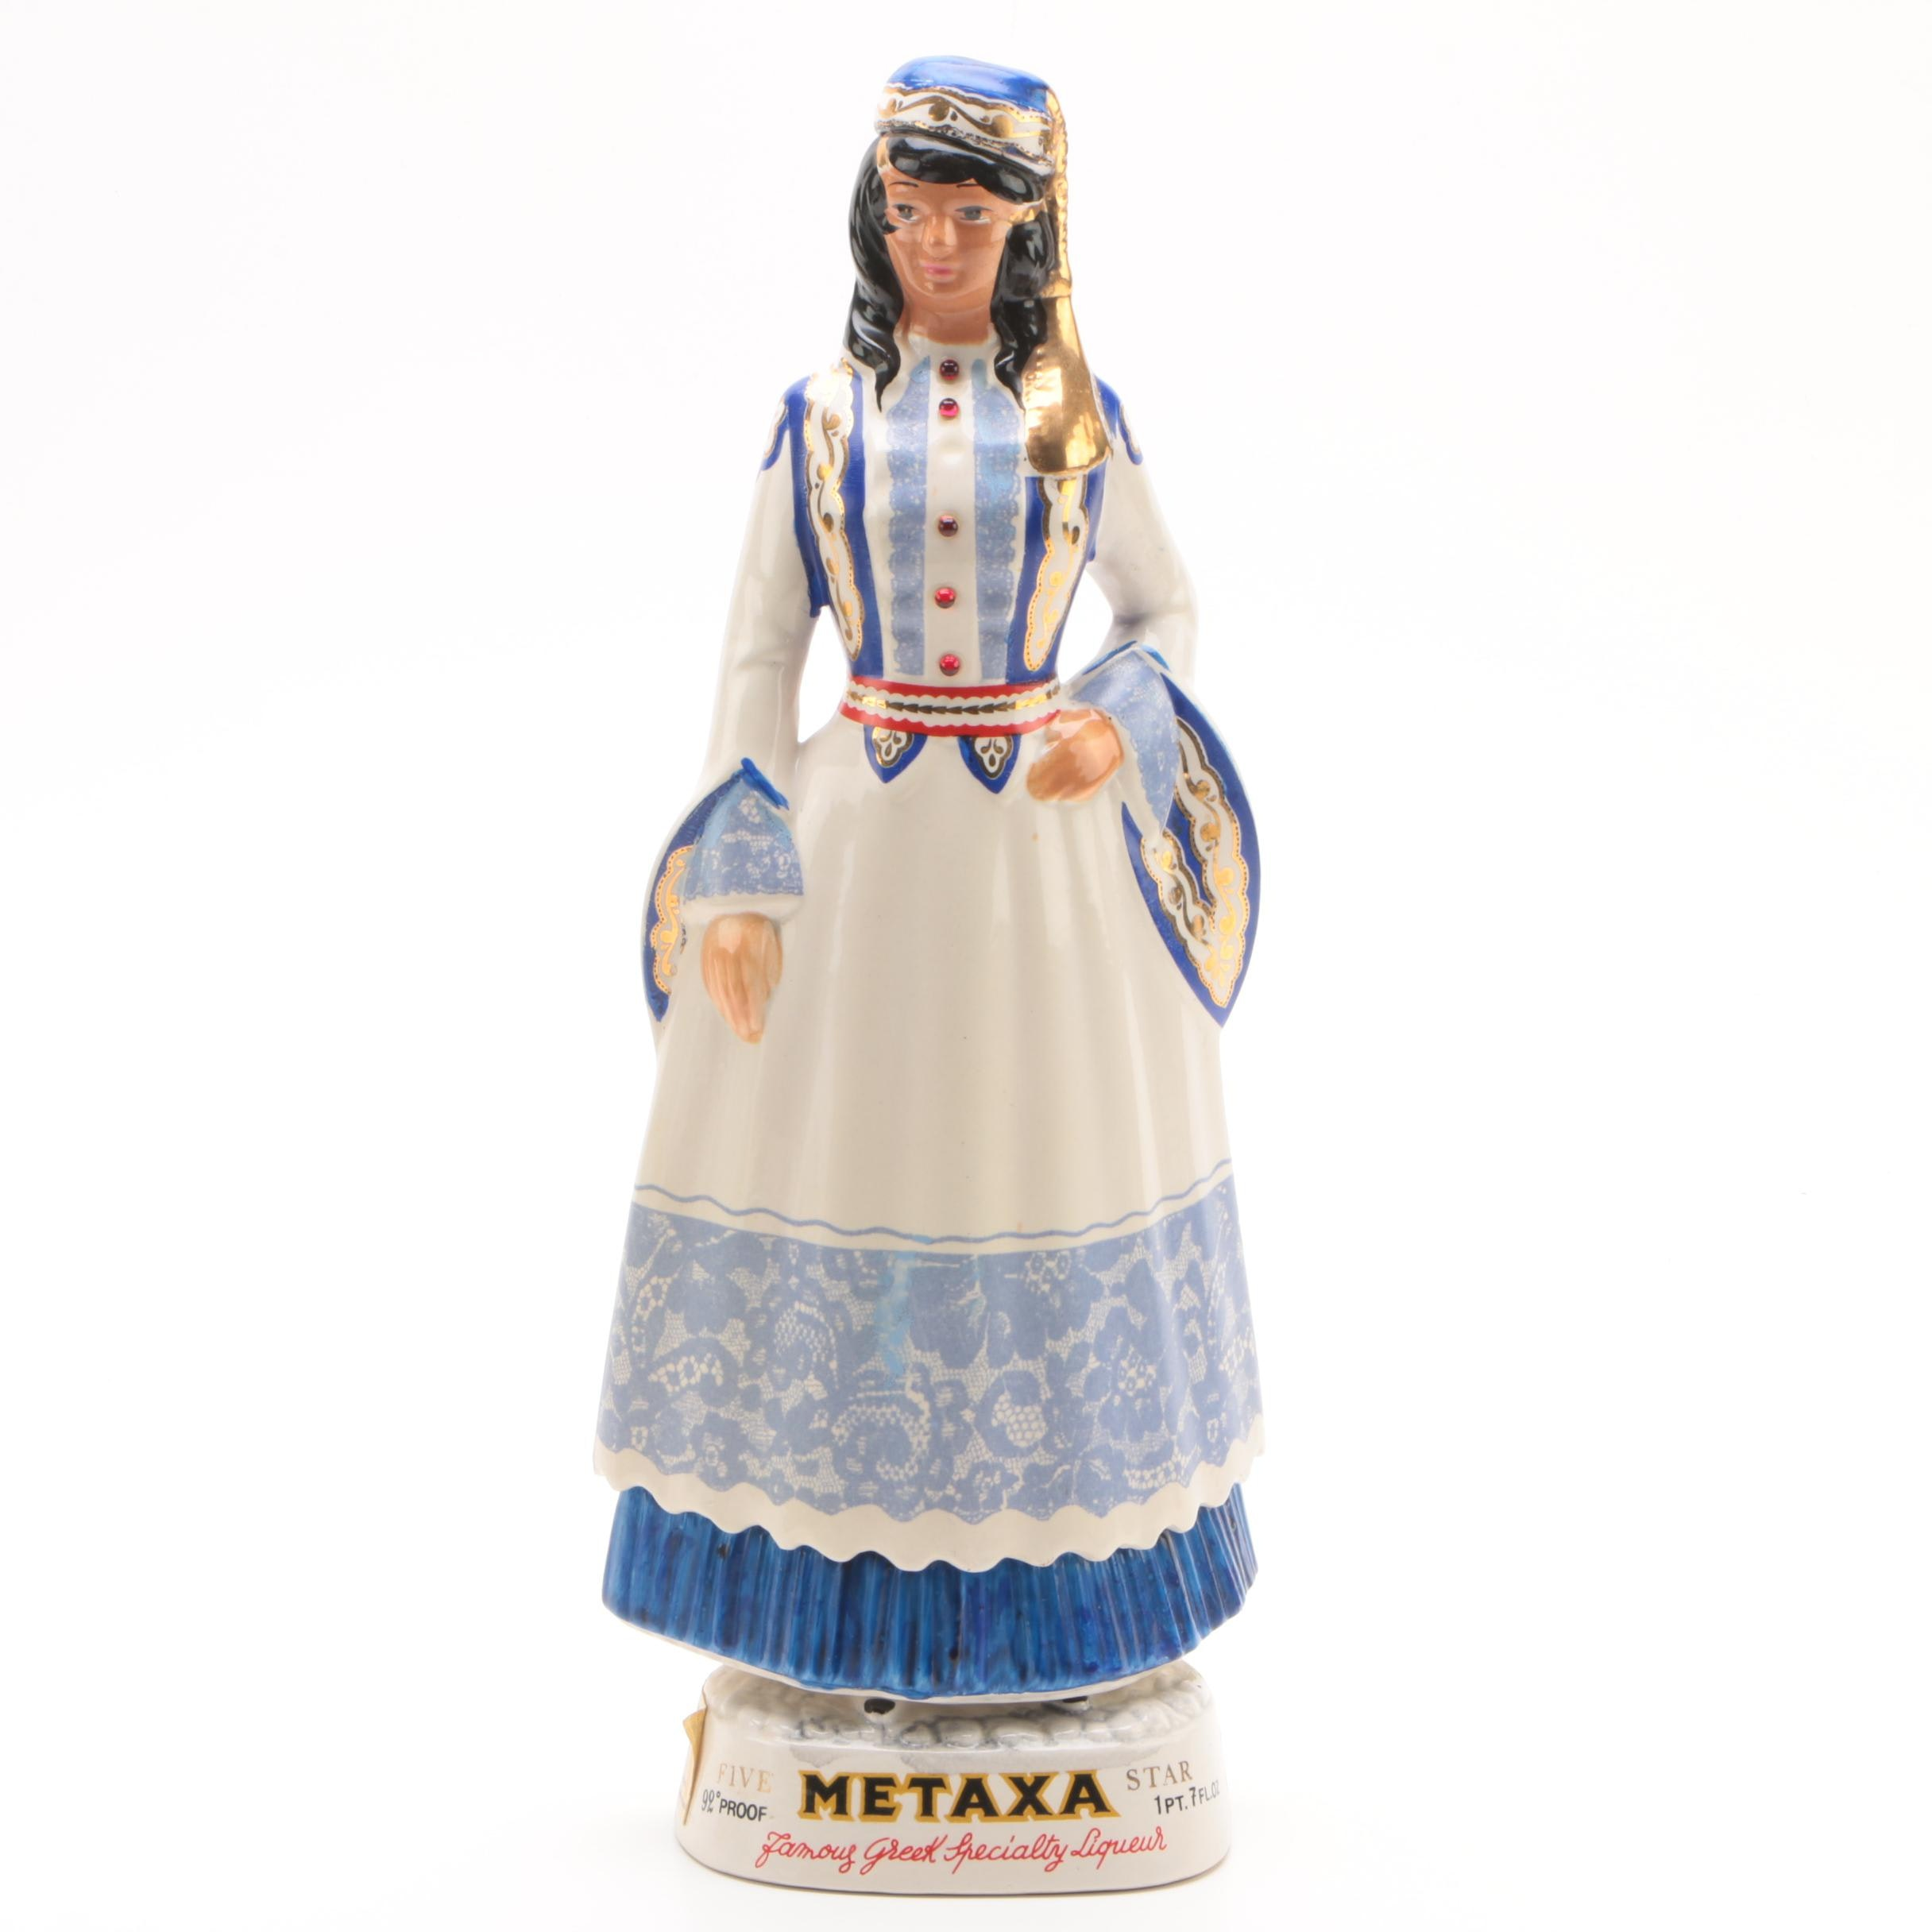 Vintage Metaxa Greek Liqueur Hand-Painted Liquor Decanter